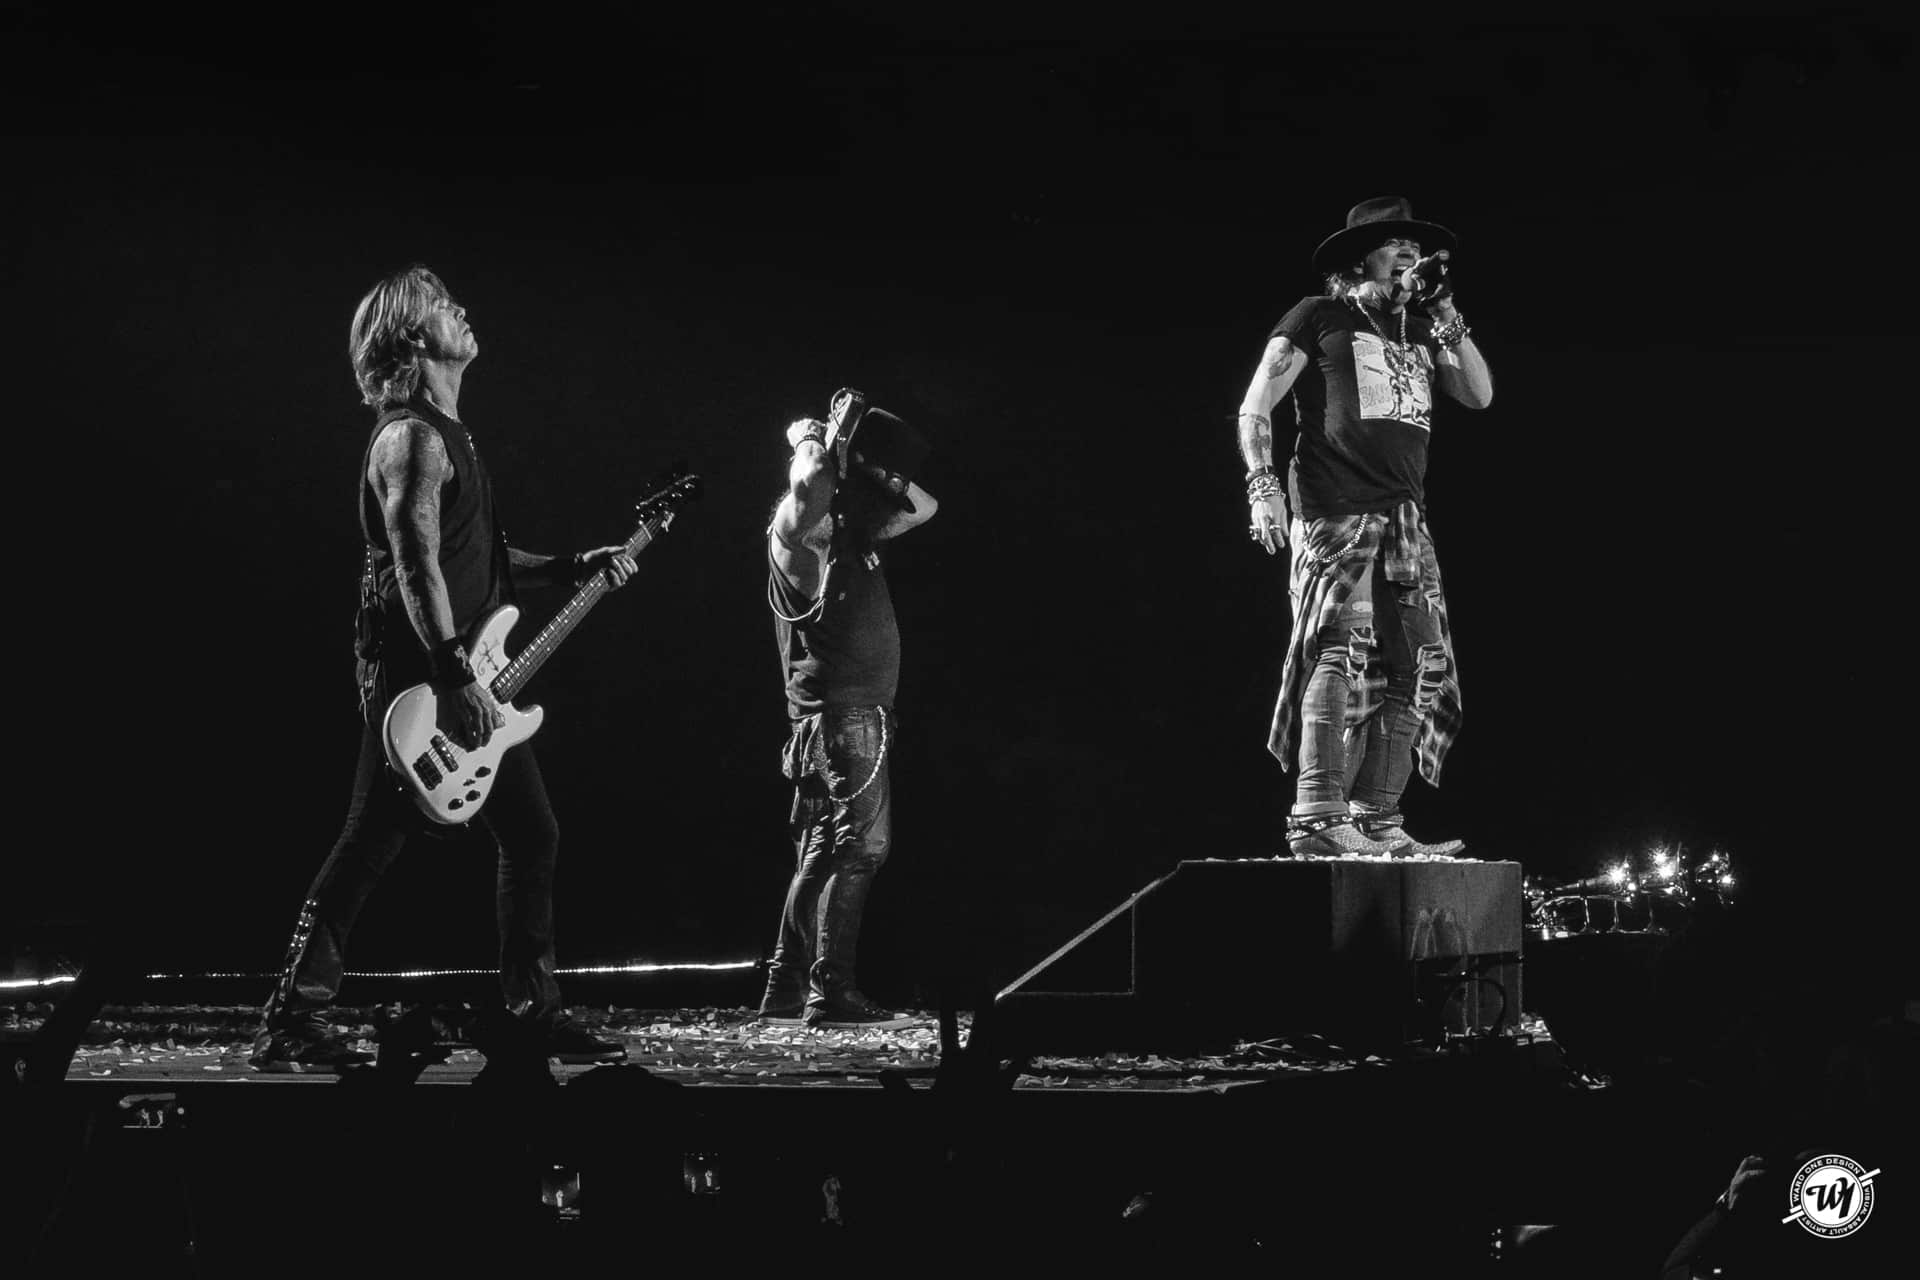 Guns N' Roses 2017 - Chicago Concerts photography